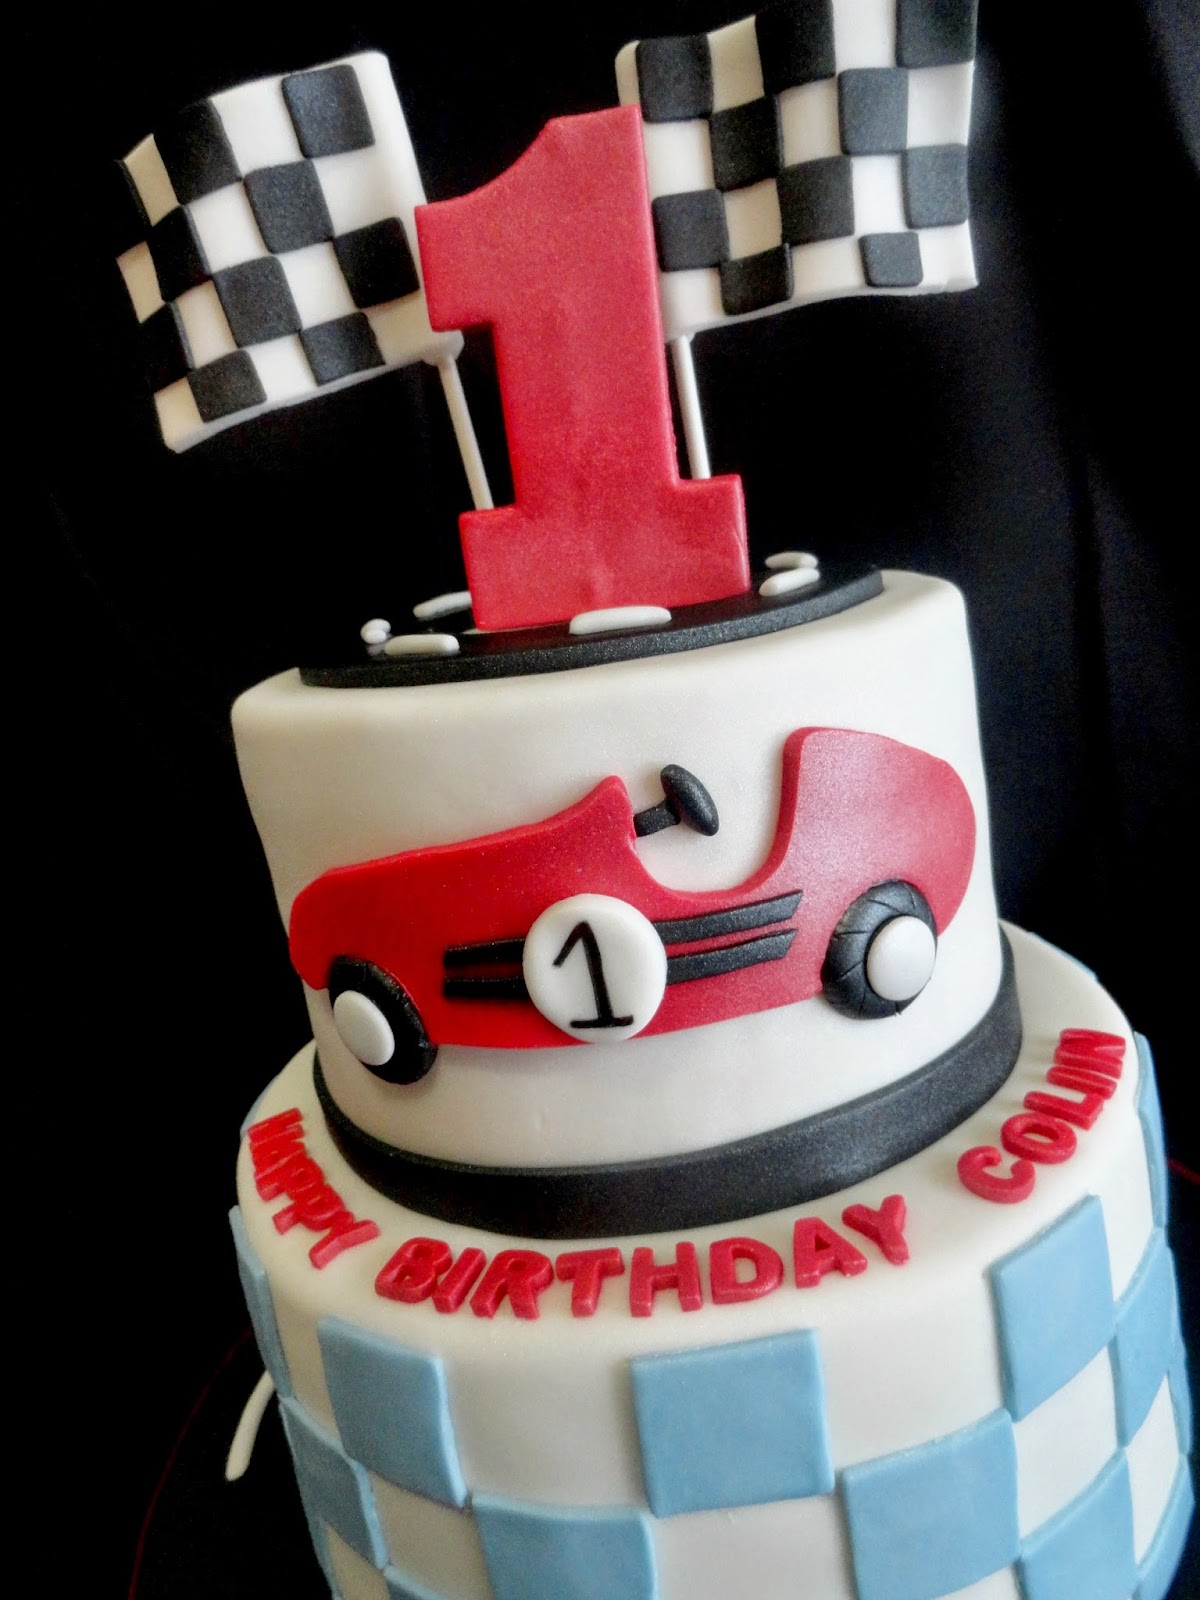 Pink Little Cake Race Car Theme 1st Birthday Cake